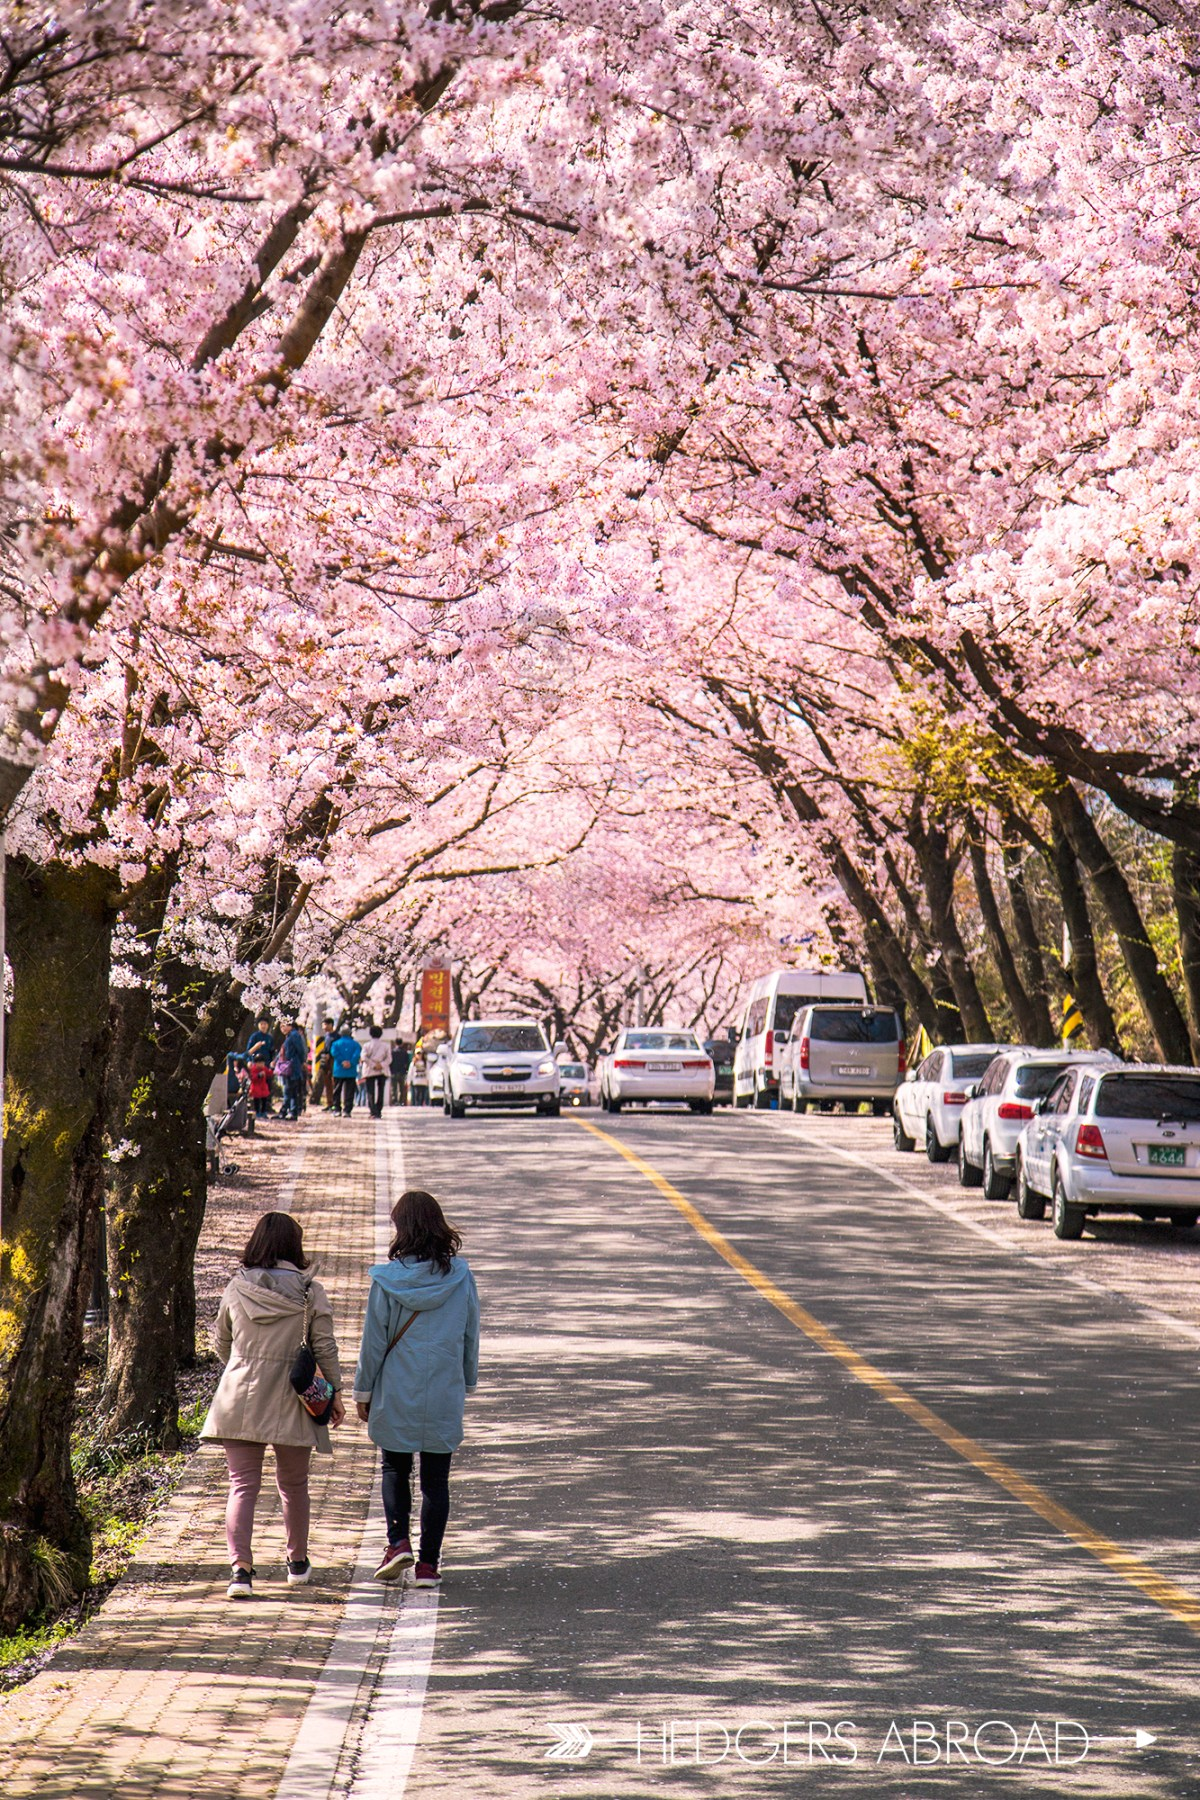 How To See The Hwagae Cherry Blossom Festival - Hedgers Abroad